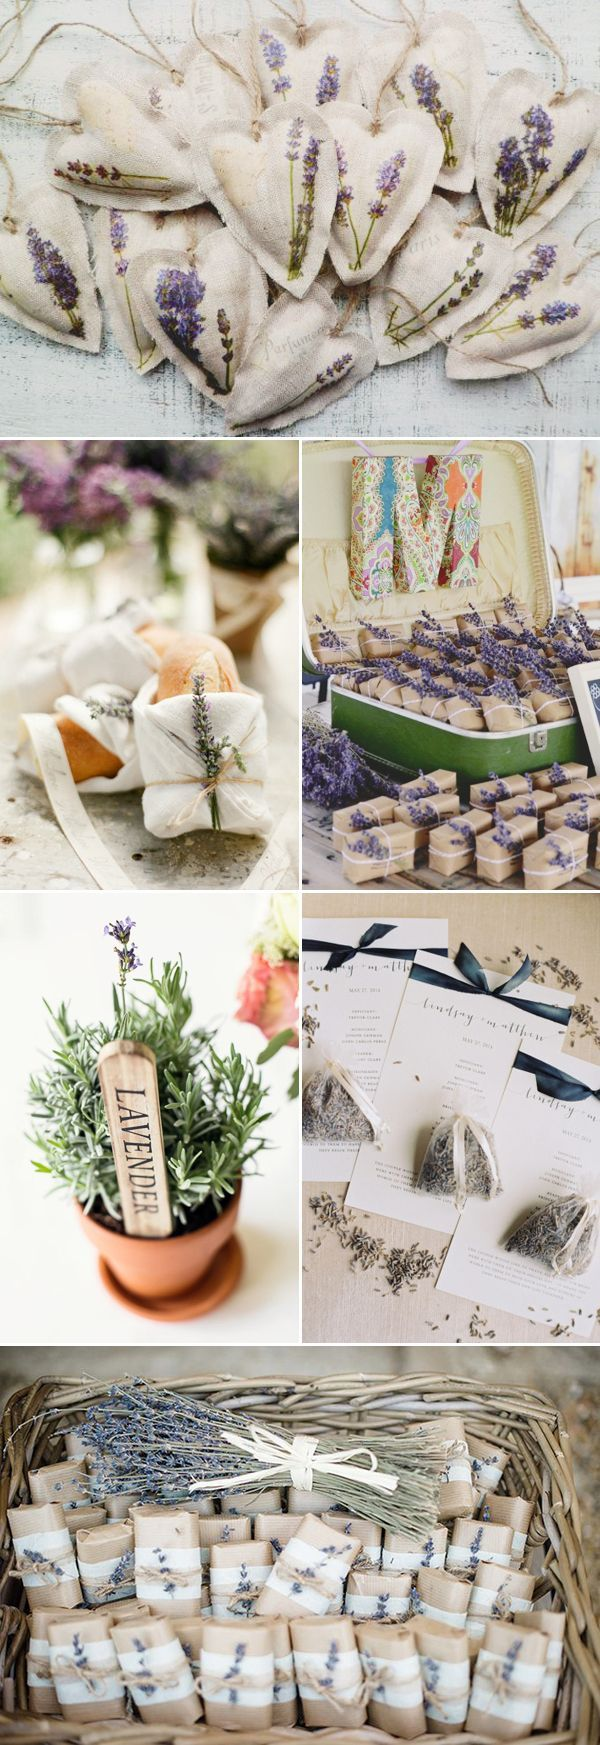 45 Romantic Ways to decorate your wedding with lavender! - Wedding Favor!